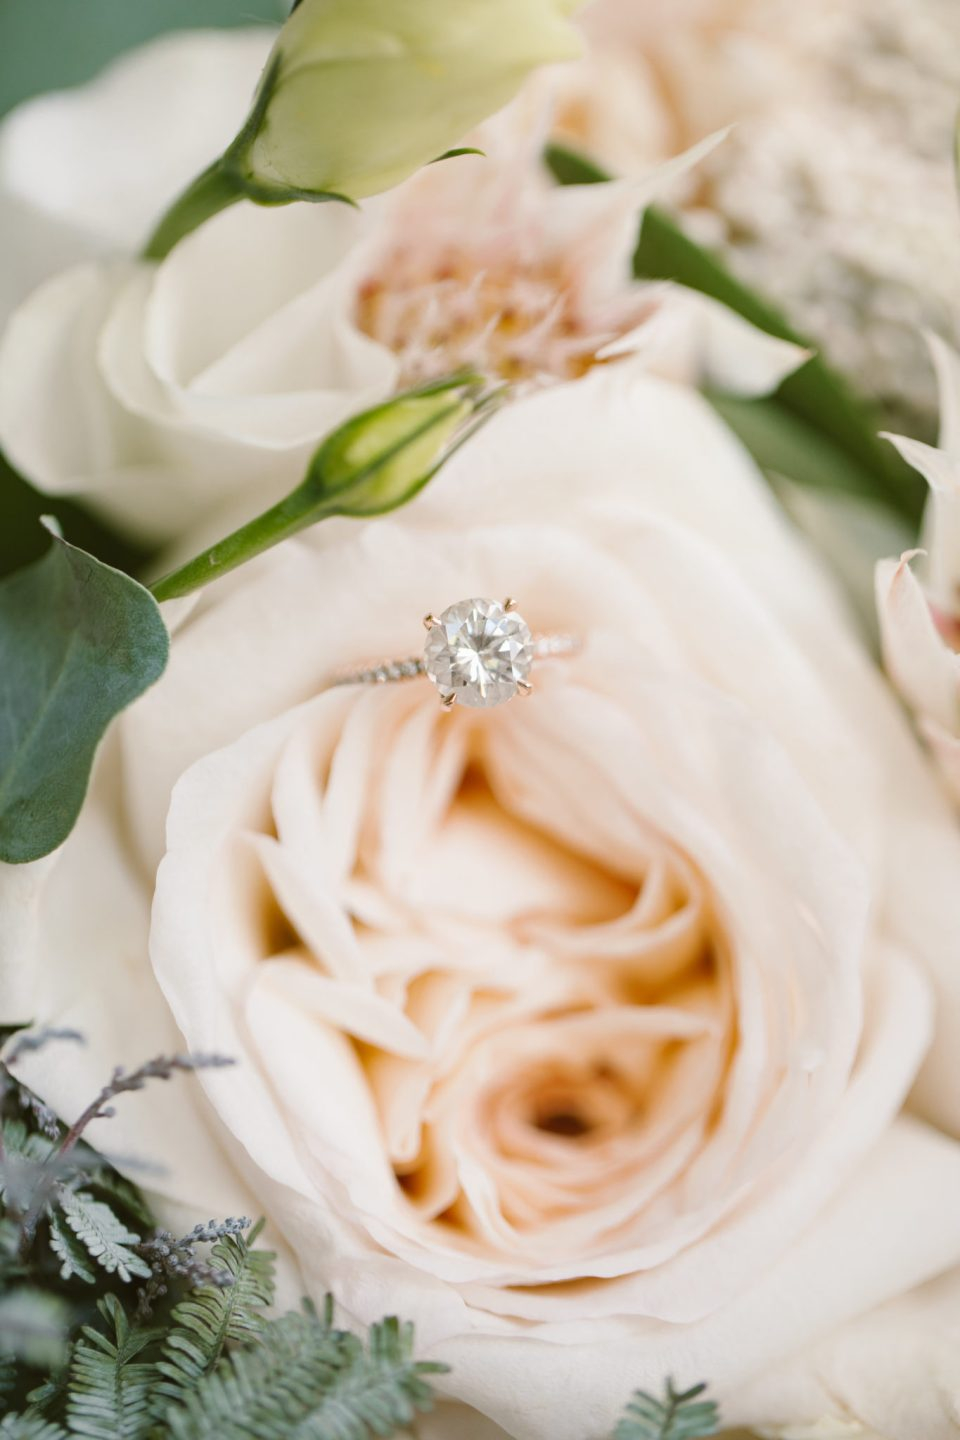 bride's wedding ring on rose photographed by Ashley Mac Photographs